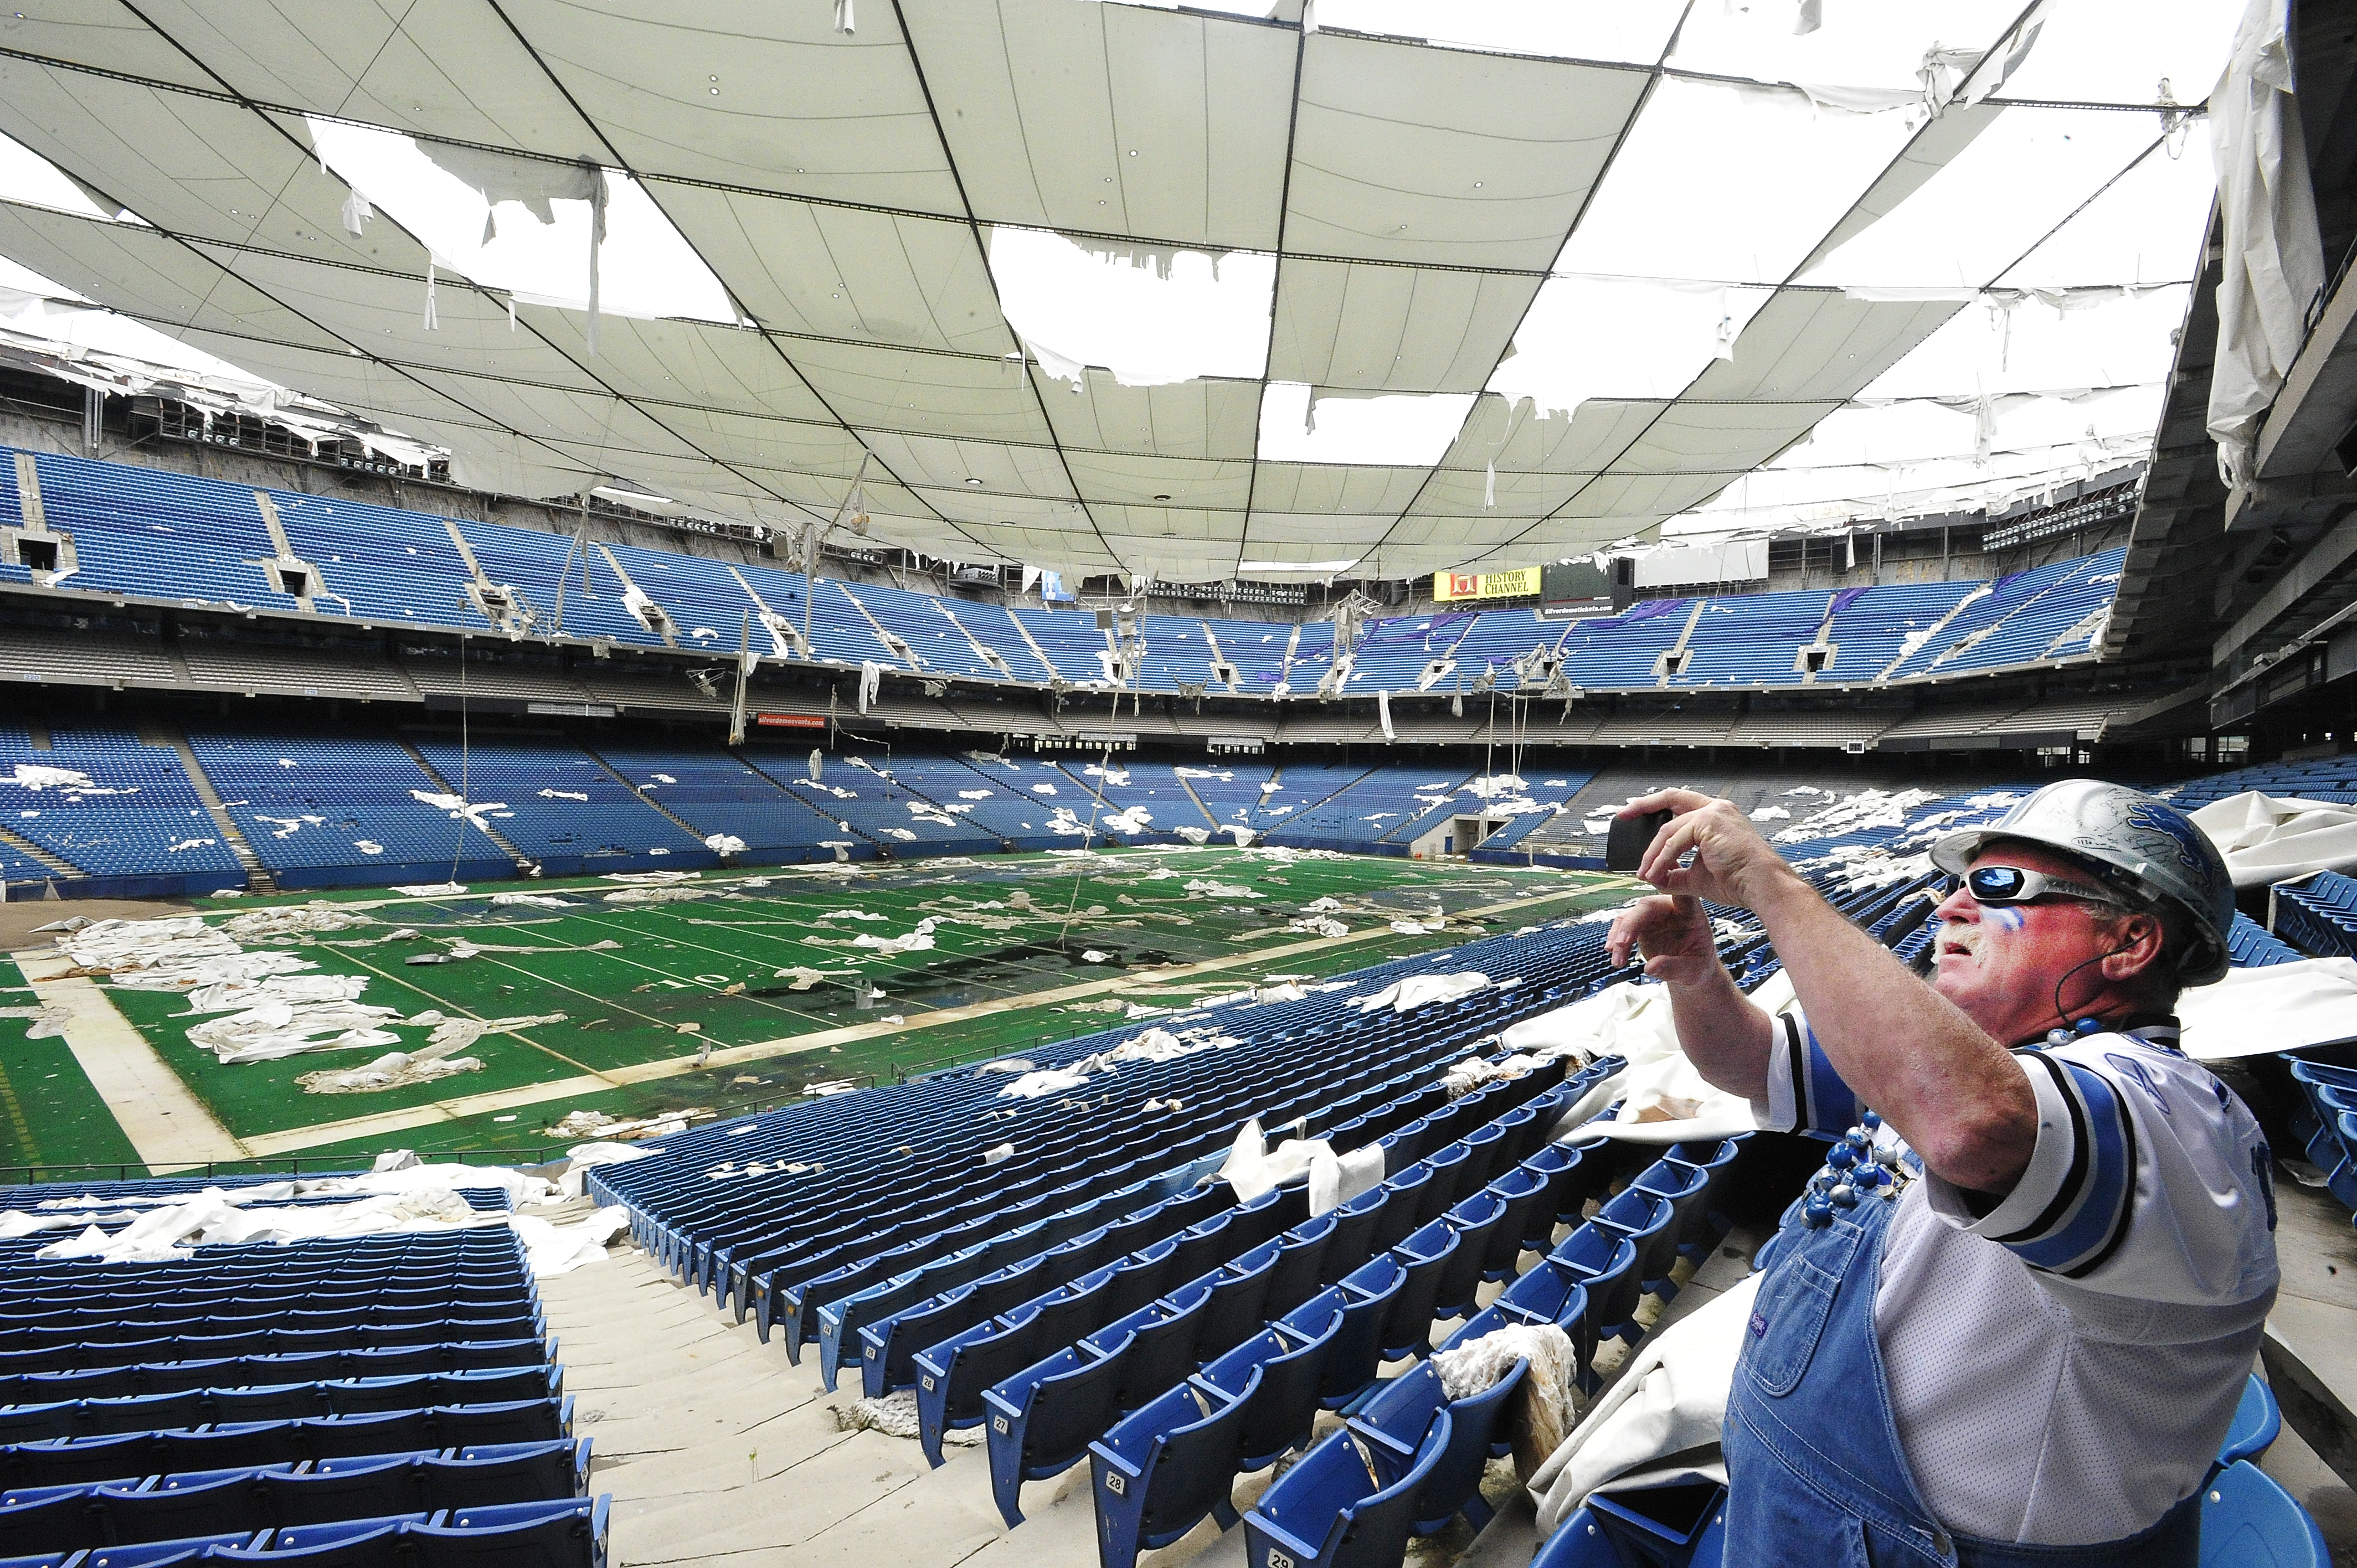 """FILE - In this May 12, 2014 file photo,   Ron """"Crackman"""" Crachiola takes a picture on his cell phone at the Pontiac Silverdome in Pontiac,  Mich.  The Pontiac Silverdome is up for sale again, with an asking price of about $30 million. The former home of t"""